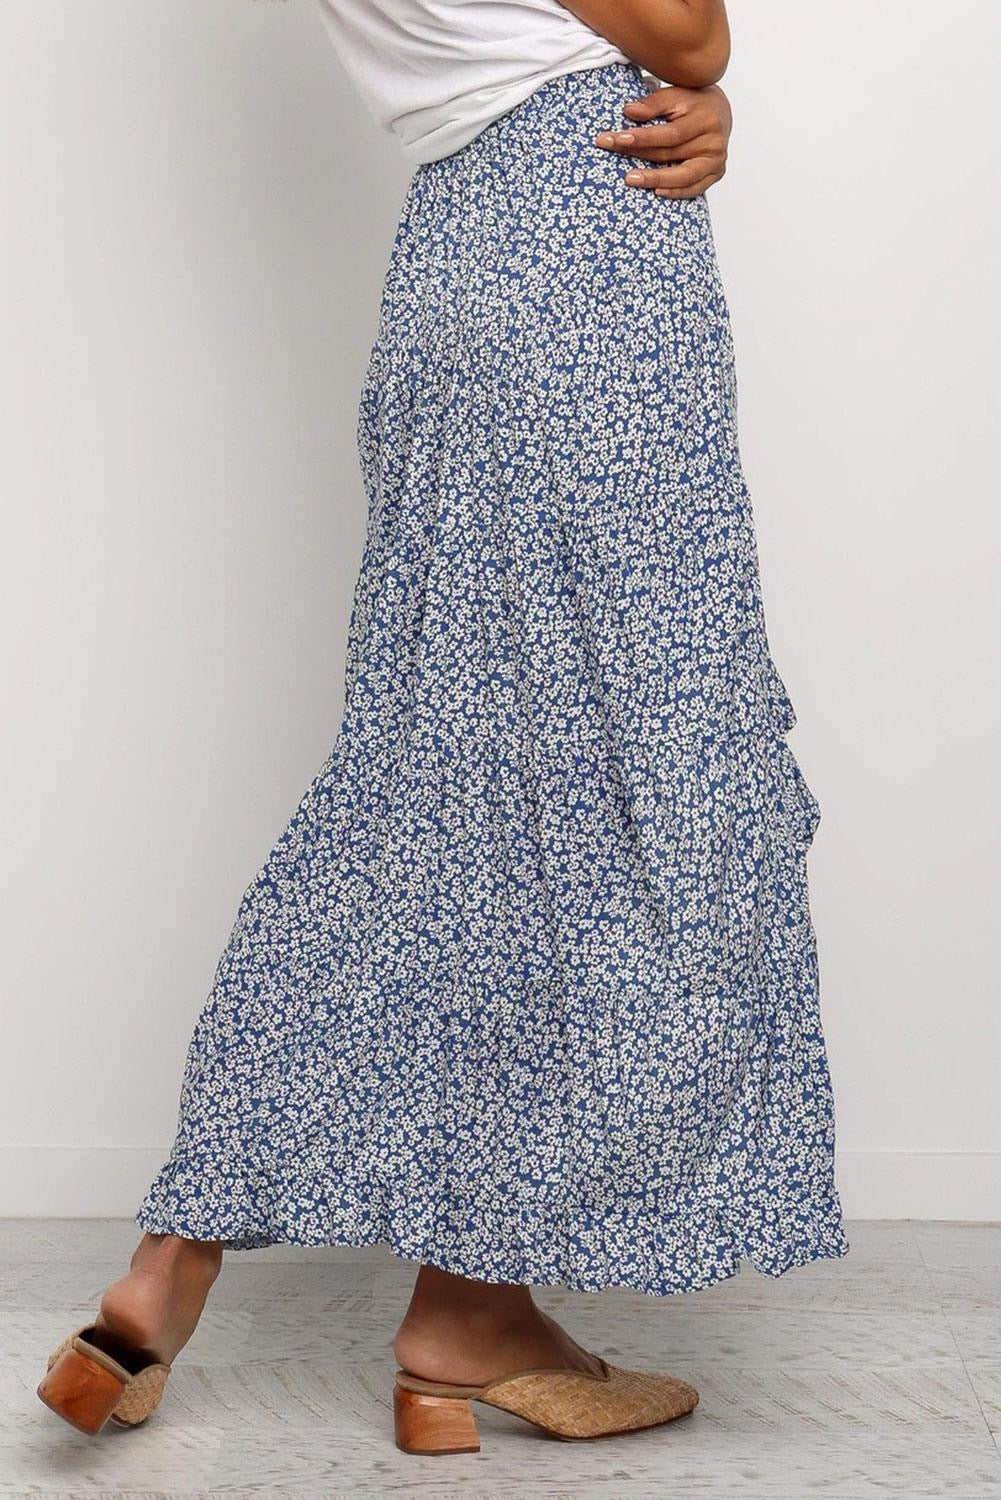 Mary Floral Long Skirt in Navy